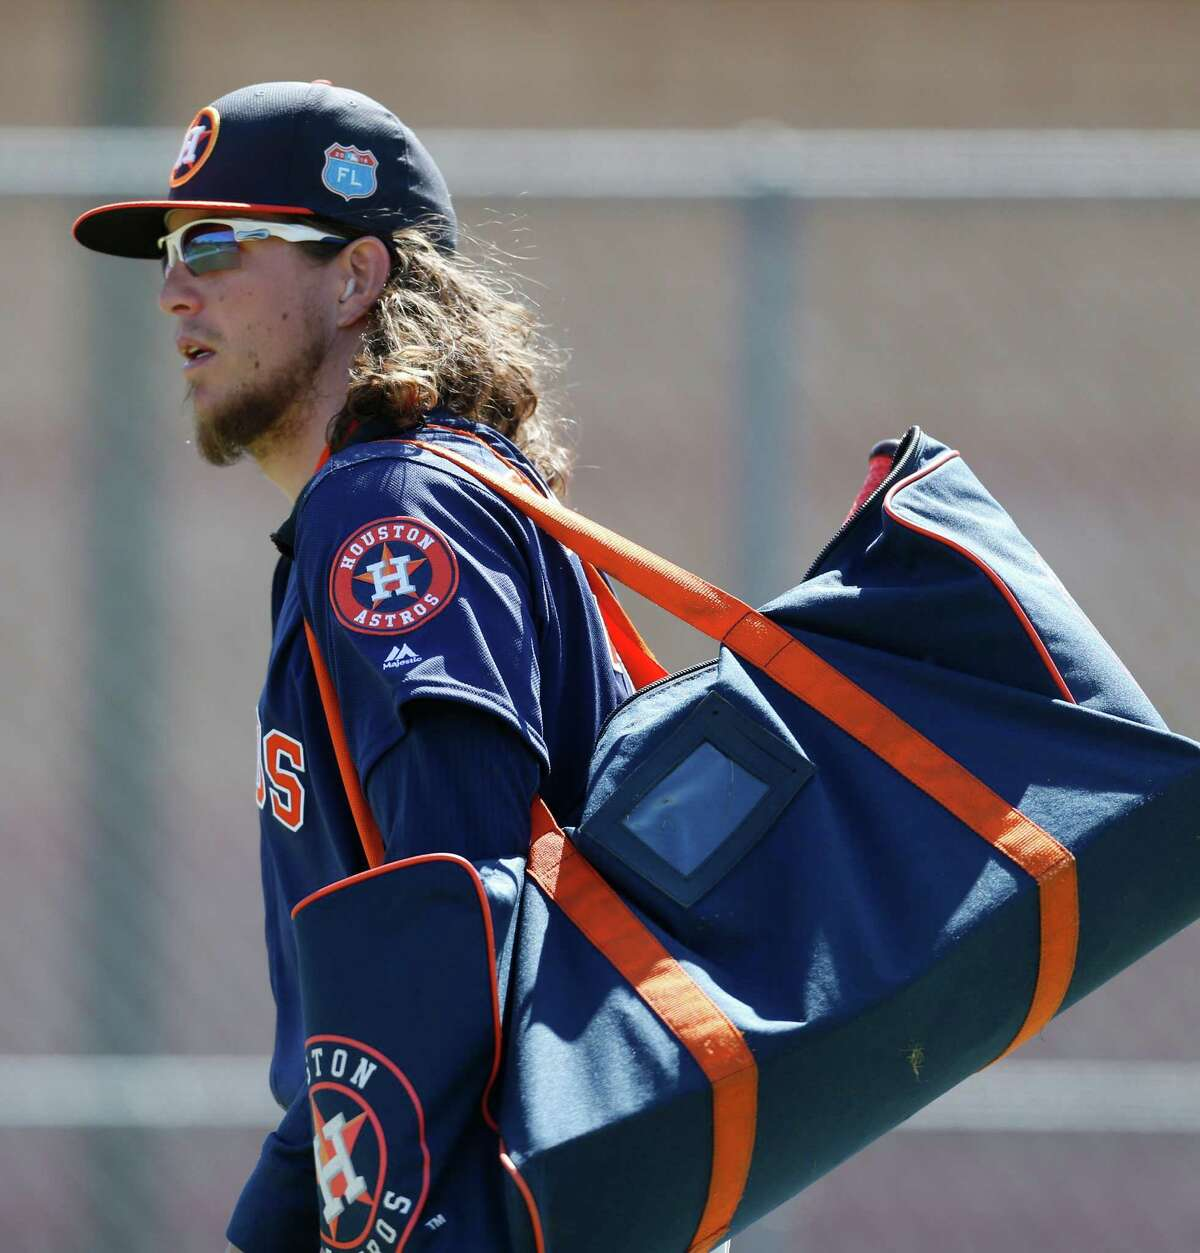 Houston Astros outfielder Colby Rasmus at the Astros spring training in Kissimmee, Florida, Saturday, Feb. 27, 2016.